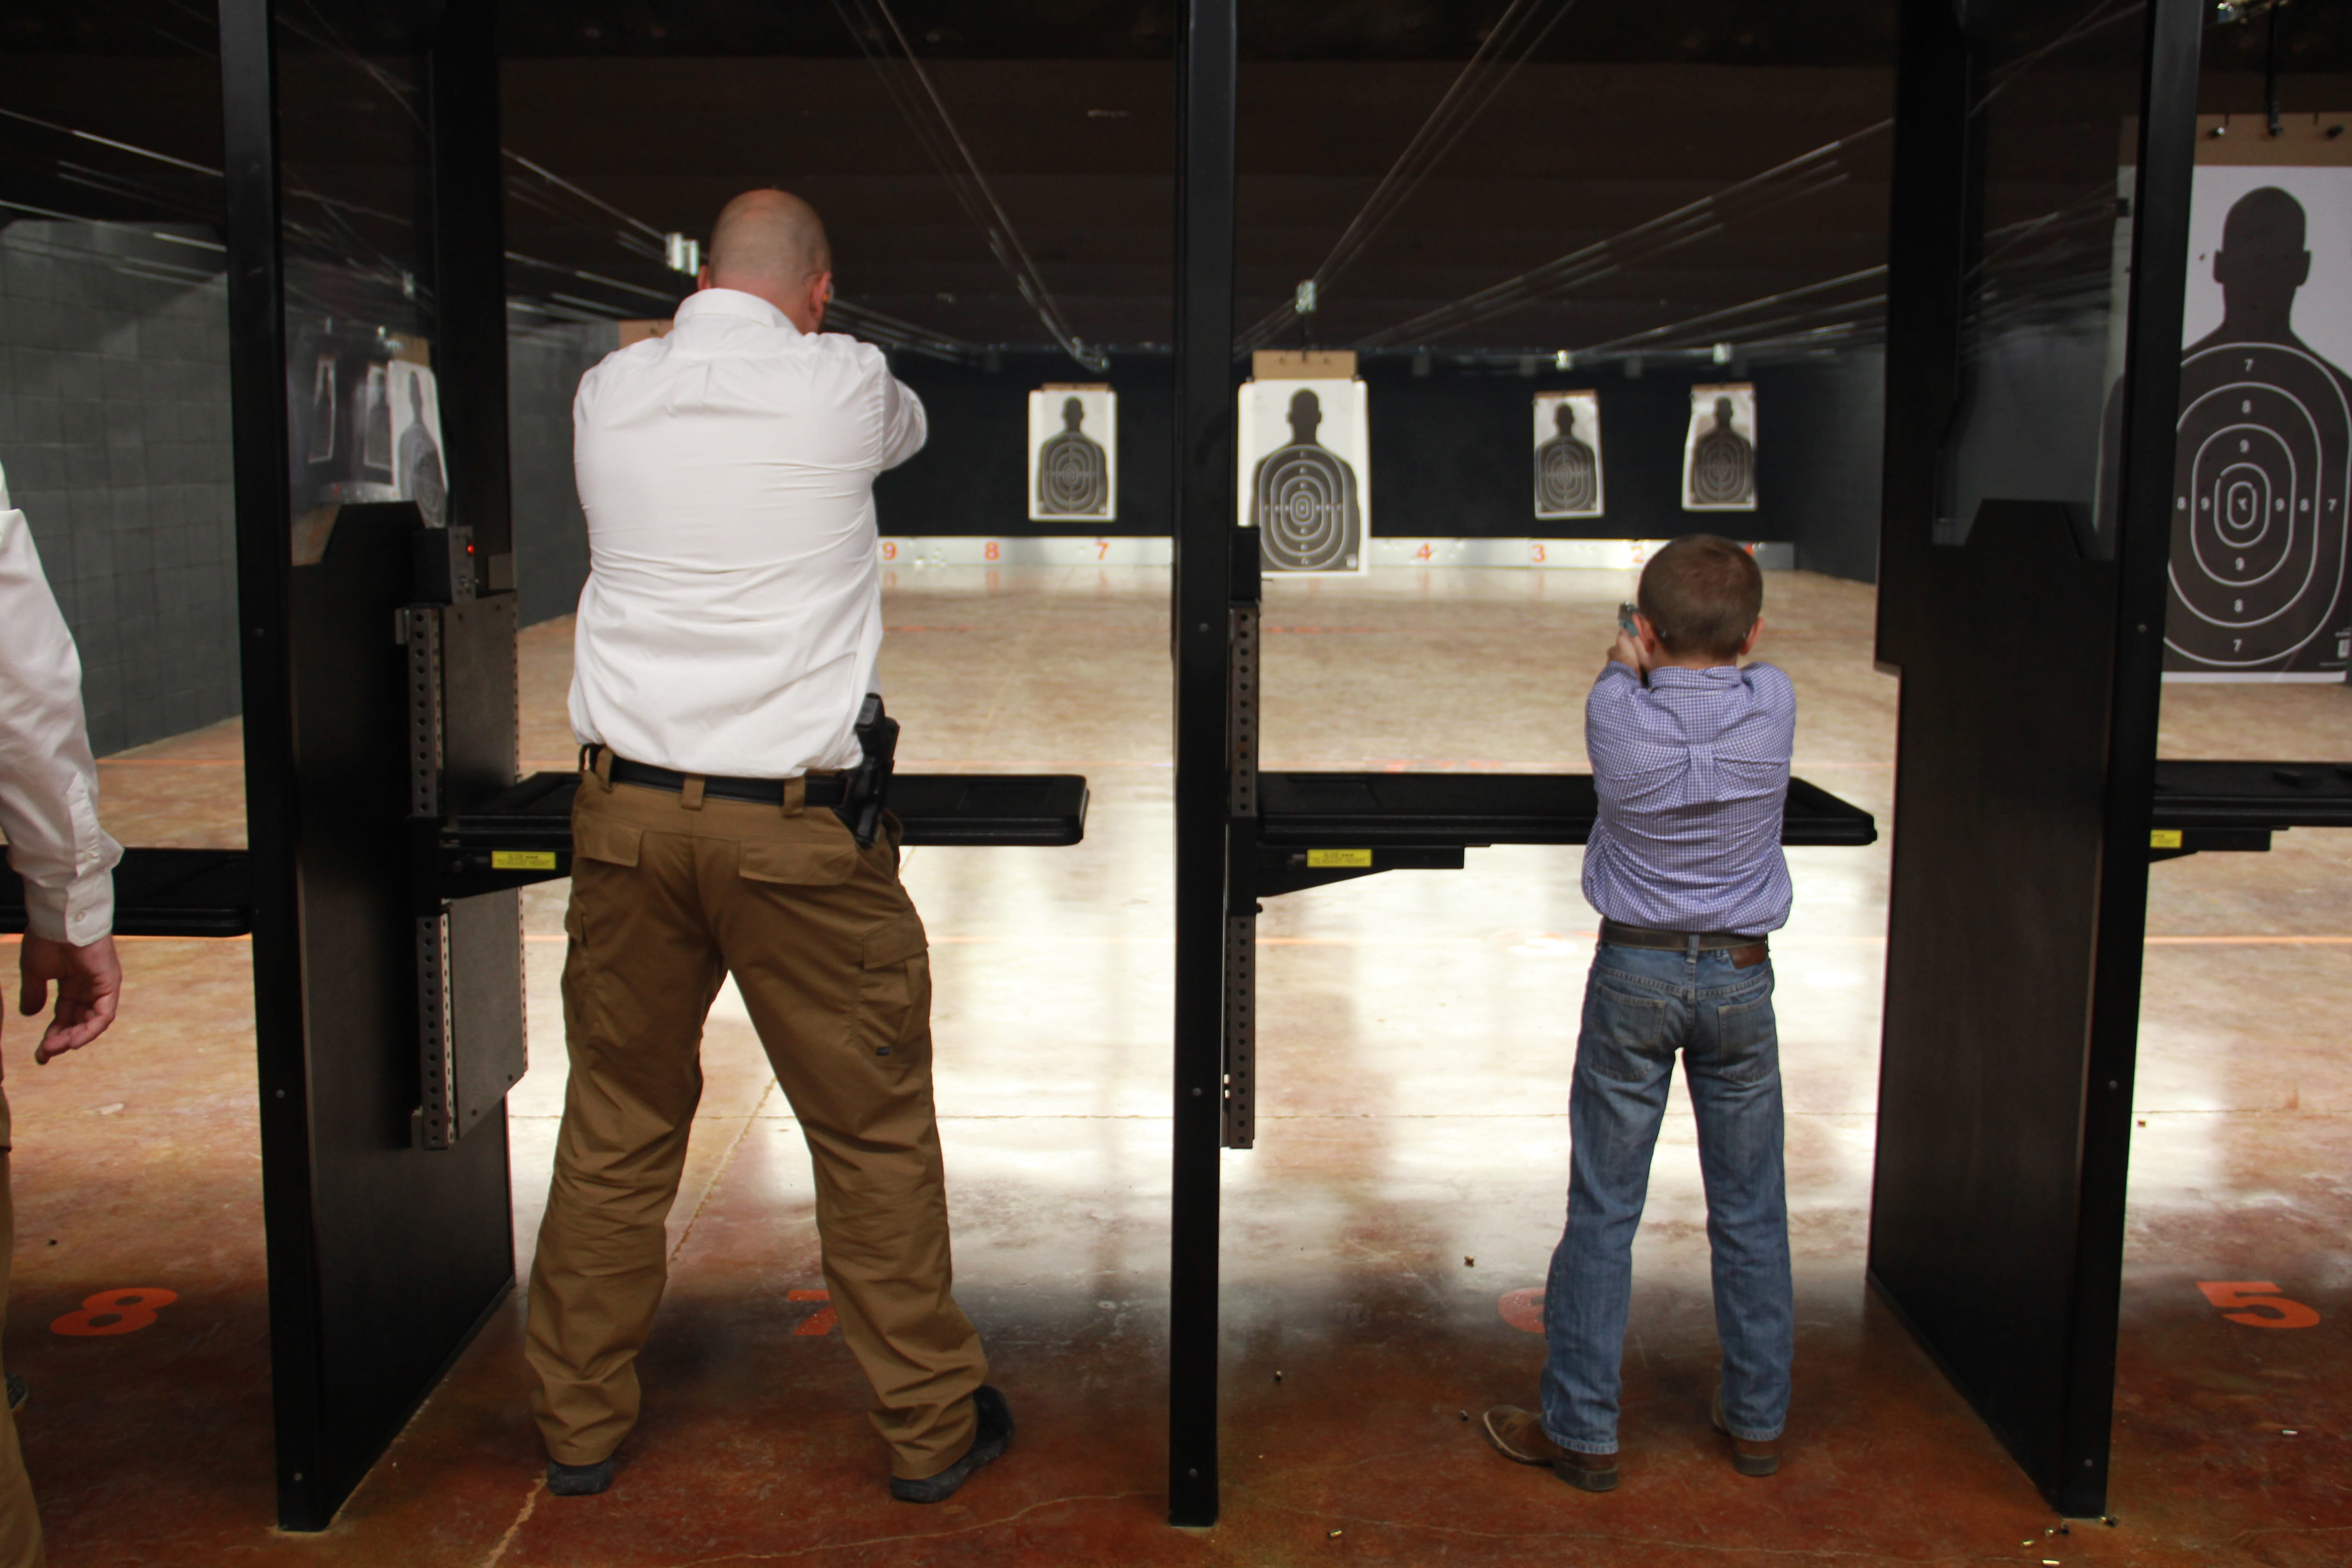 dad shooting with son fathers day indoor shooting range two